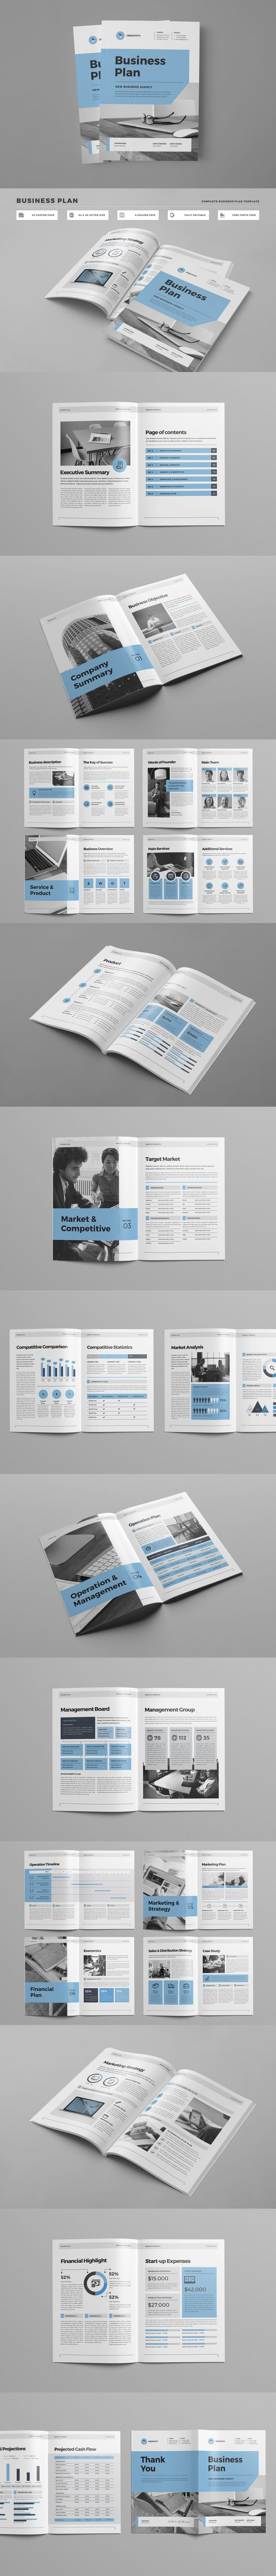 clean professional complete business plan brochure template indd with include a4 us letter size